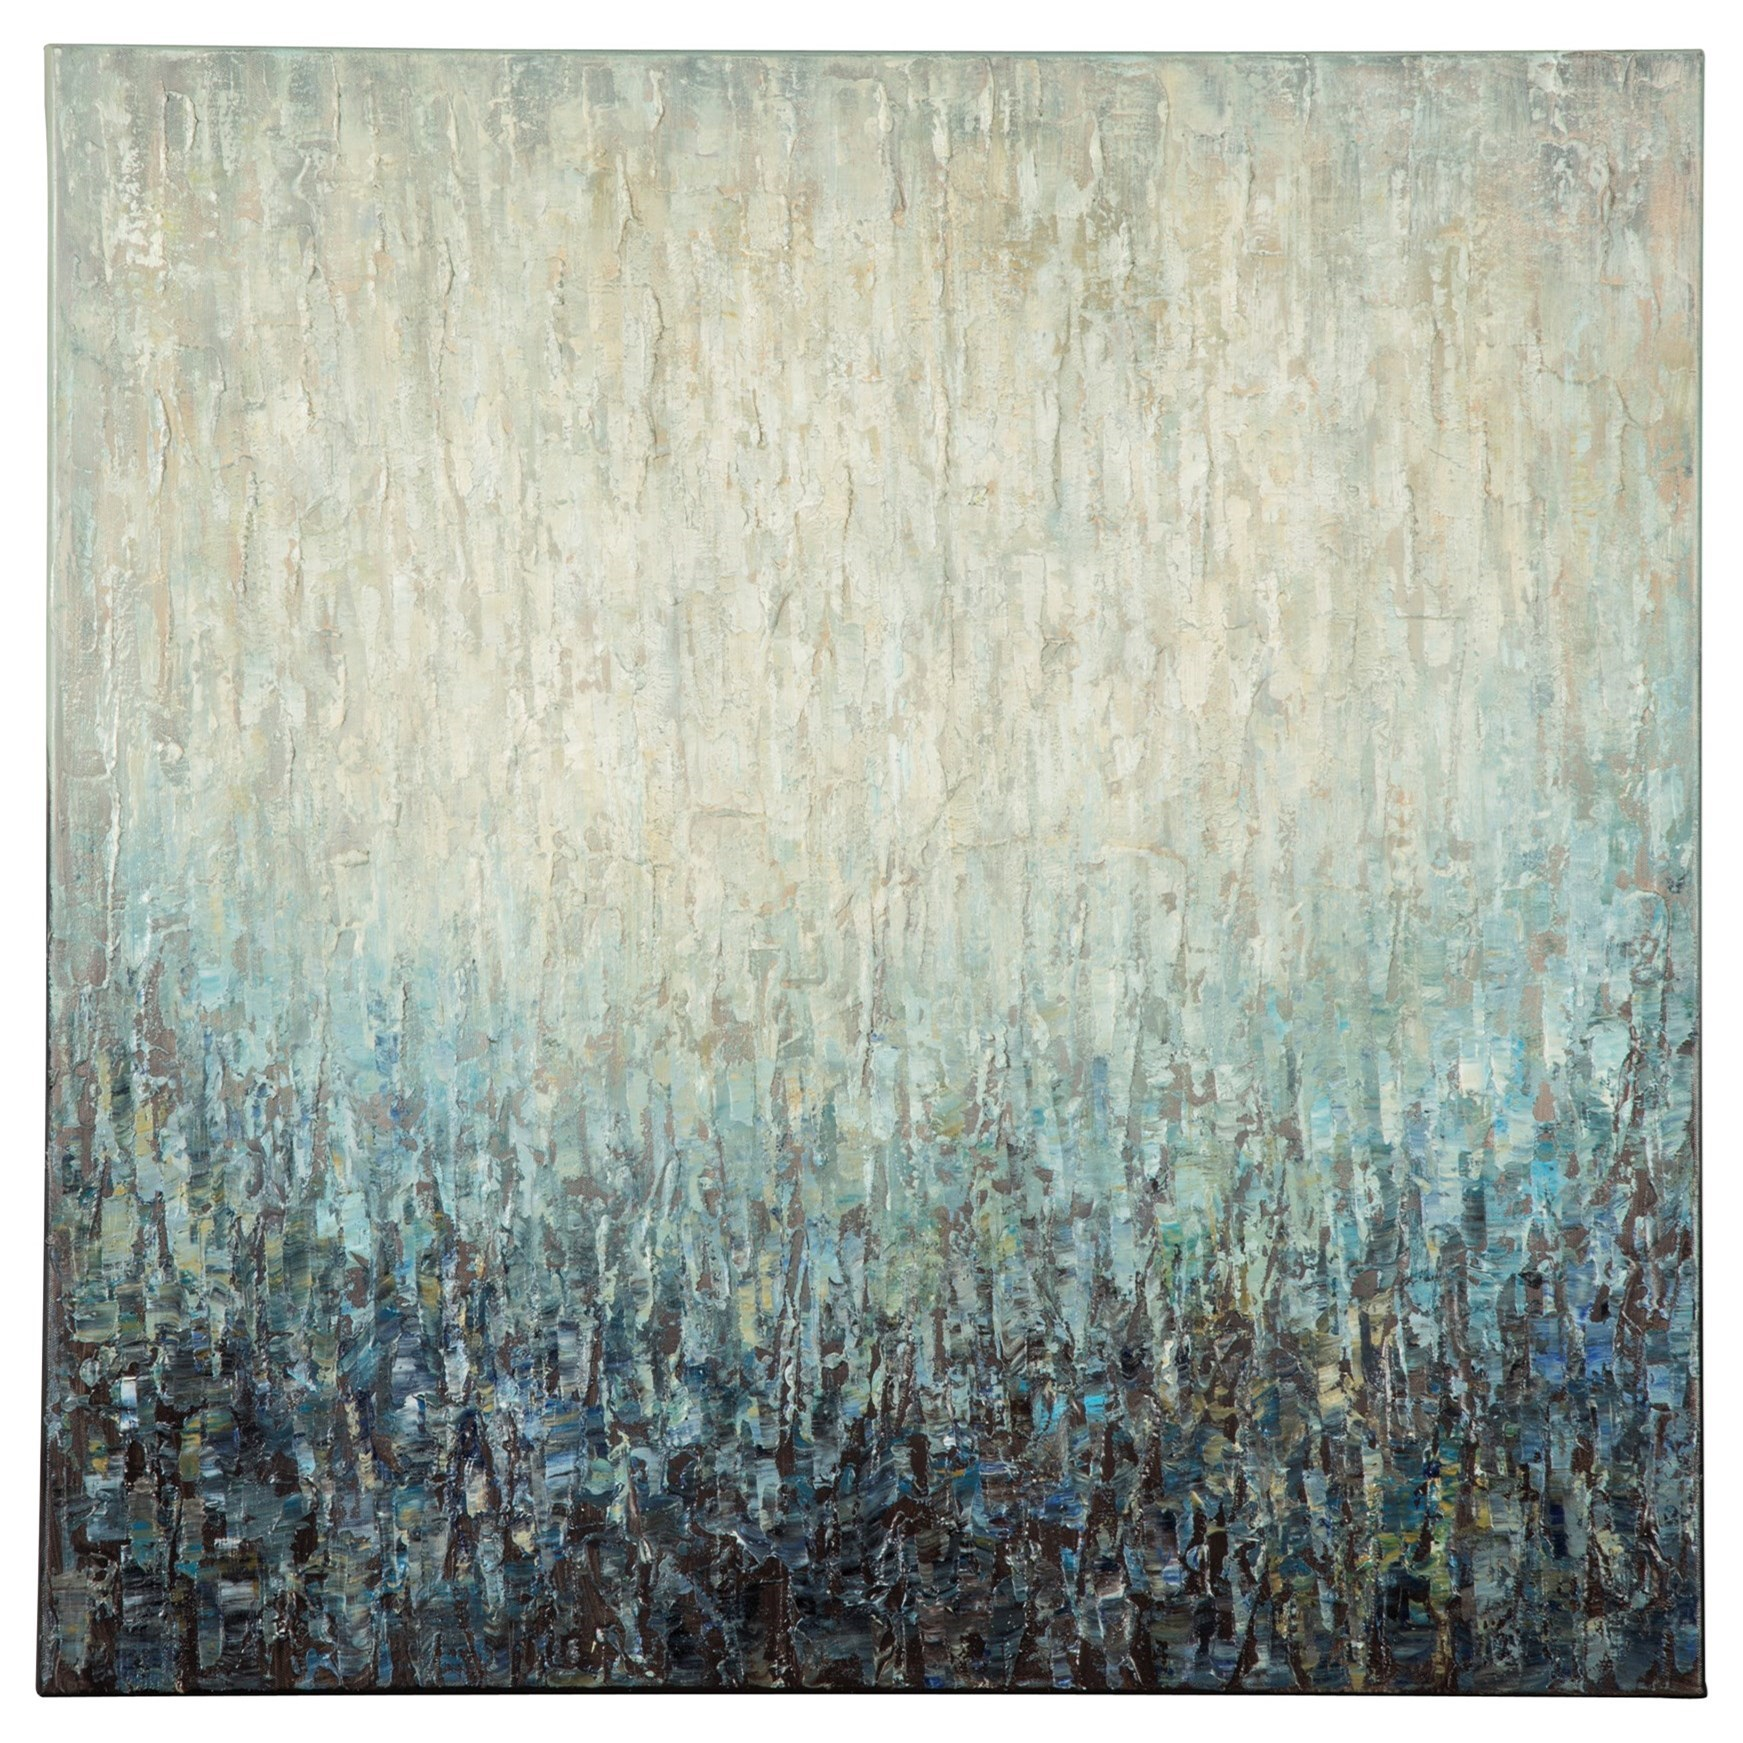 Wall Art Pearl Navy/Teal/Tan Wall Art by Signature Design by Ashley at Sparks HomeStore